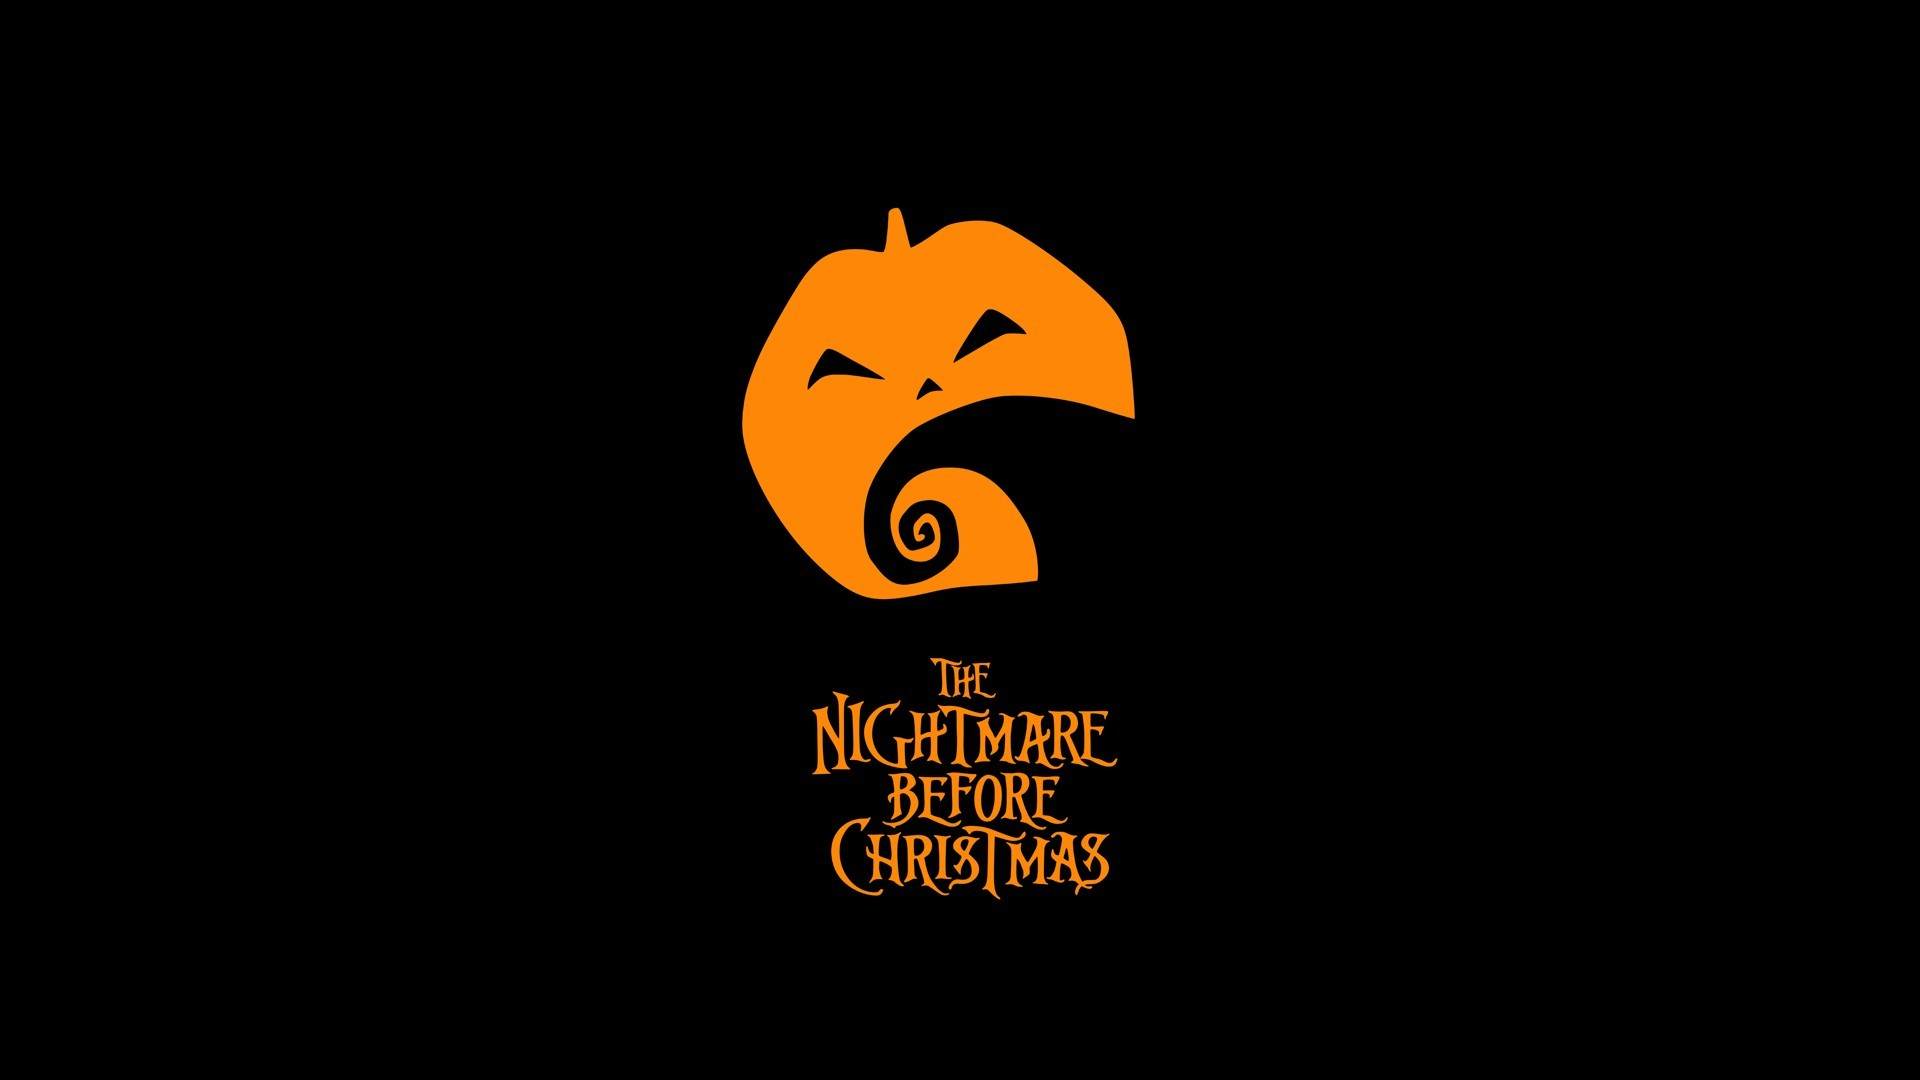 1920x1080 Coders Wallpaper Abyss Films The Nightmare Before Christmas 422404 Download